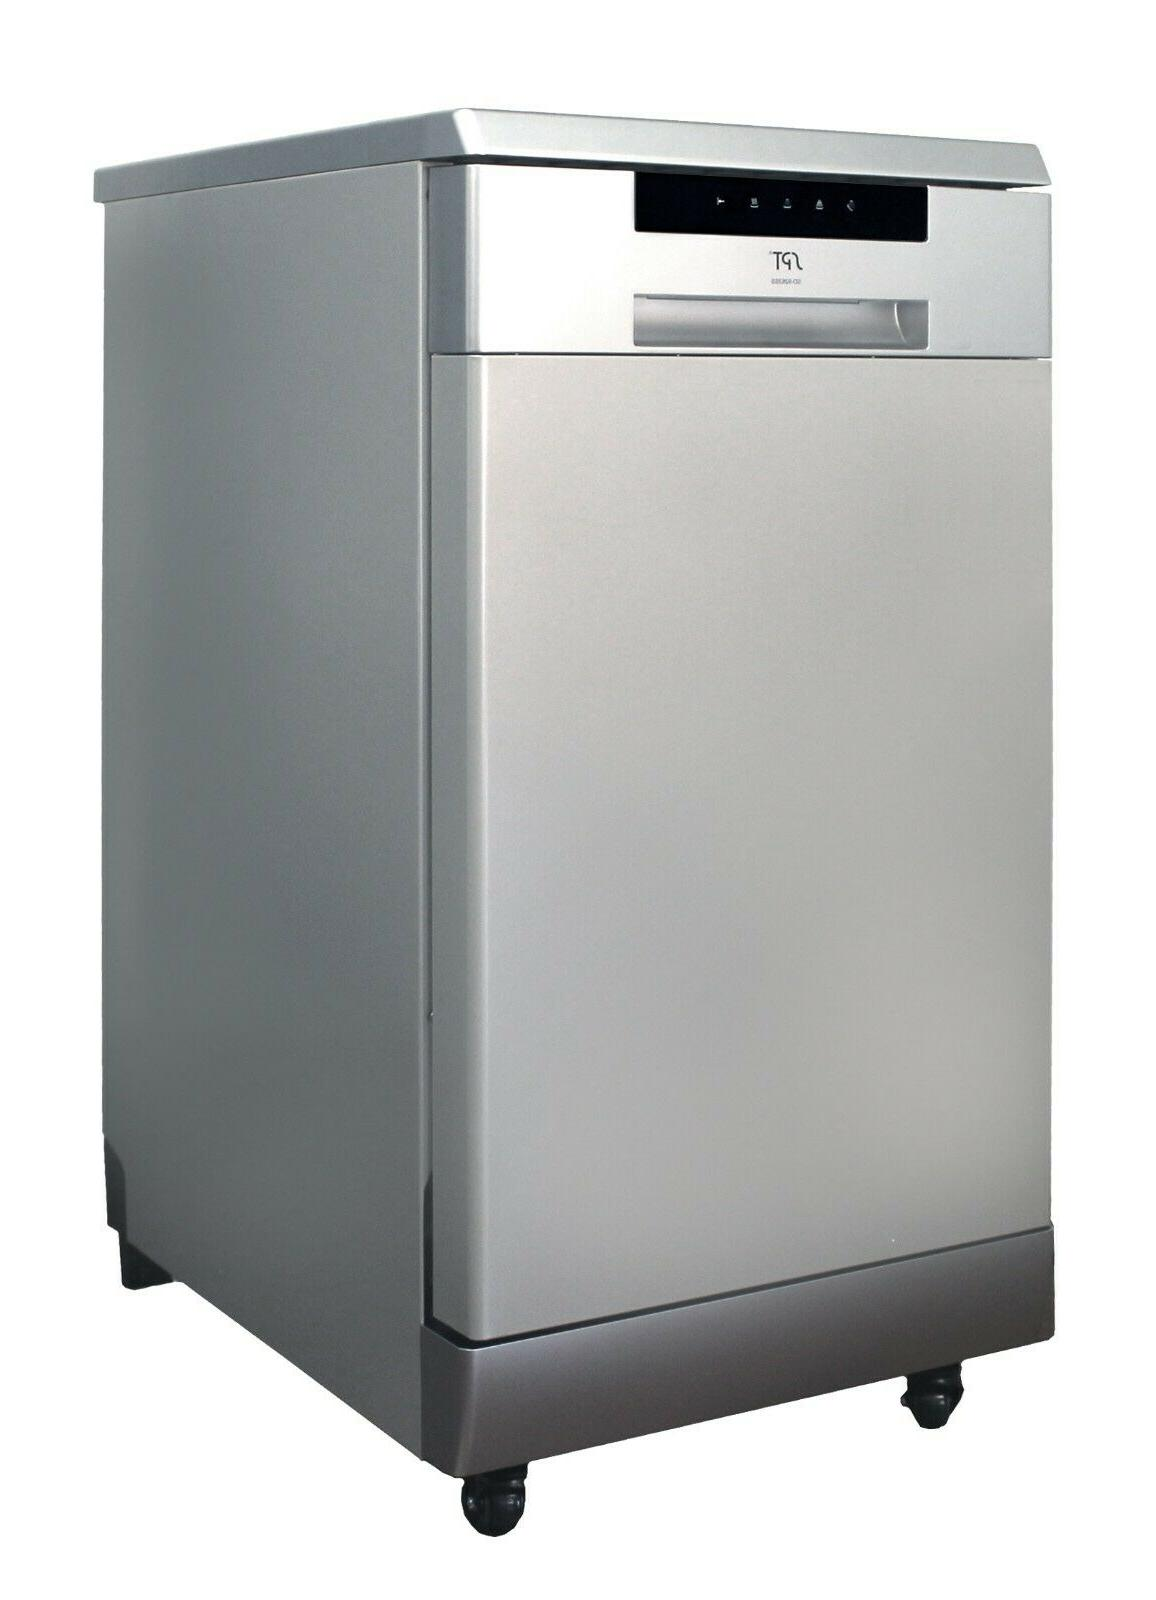 Sunpentown Dishwasher-ENERGY STAR Stainless Steel SD-9263SS